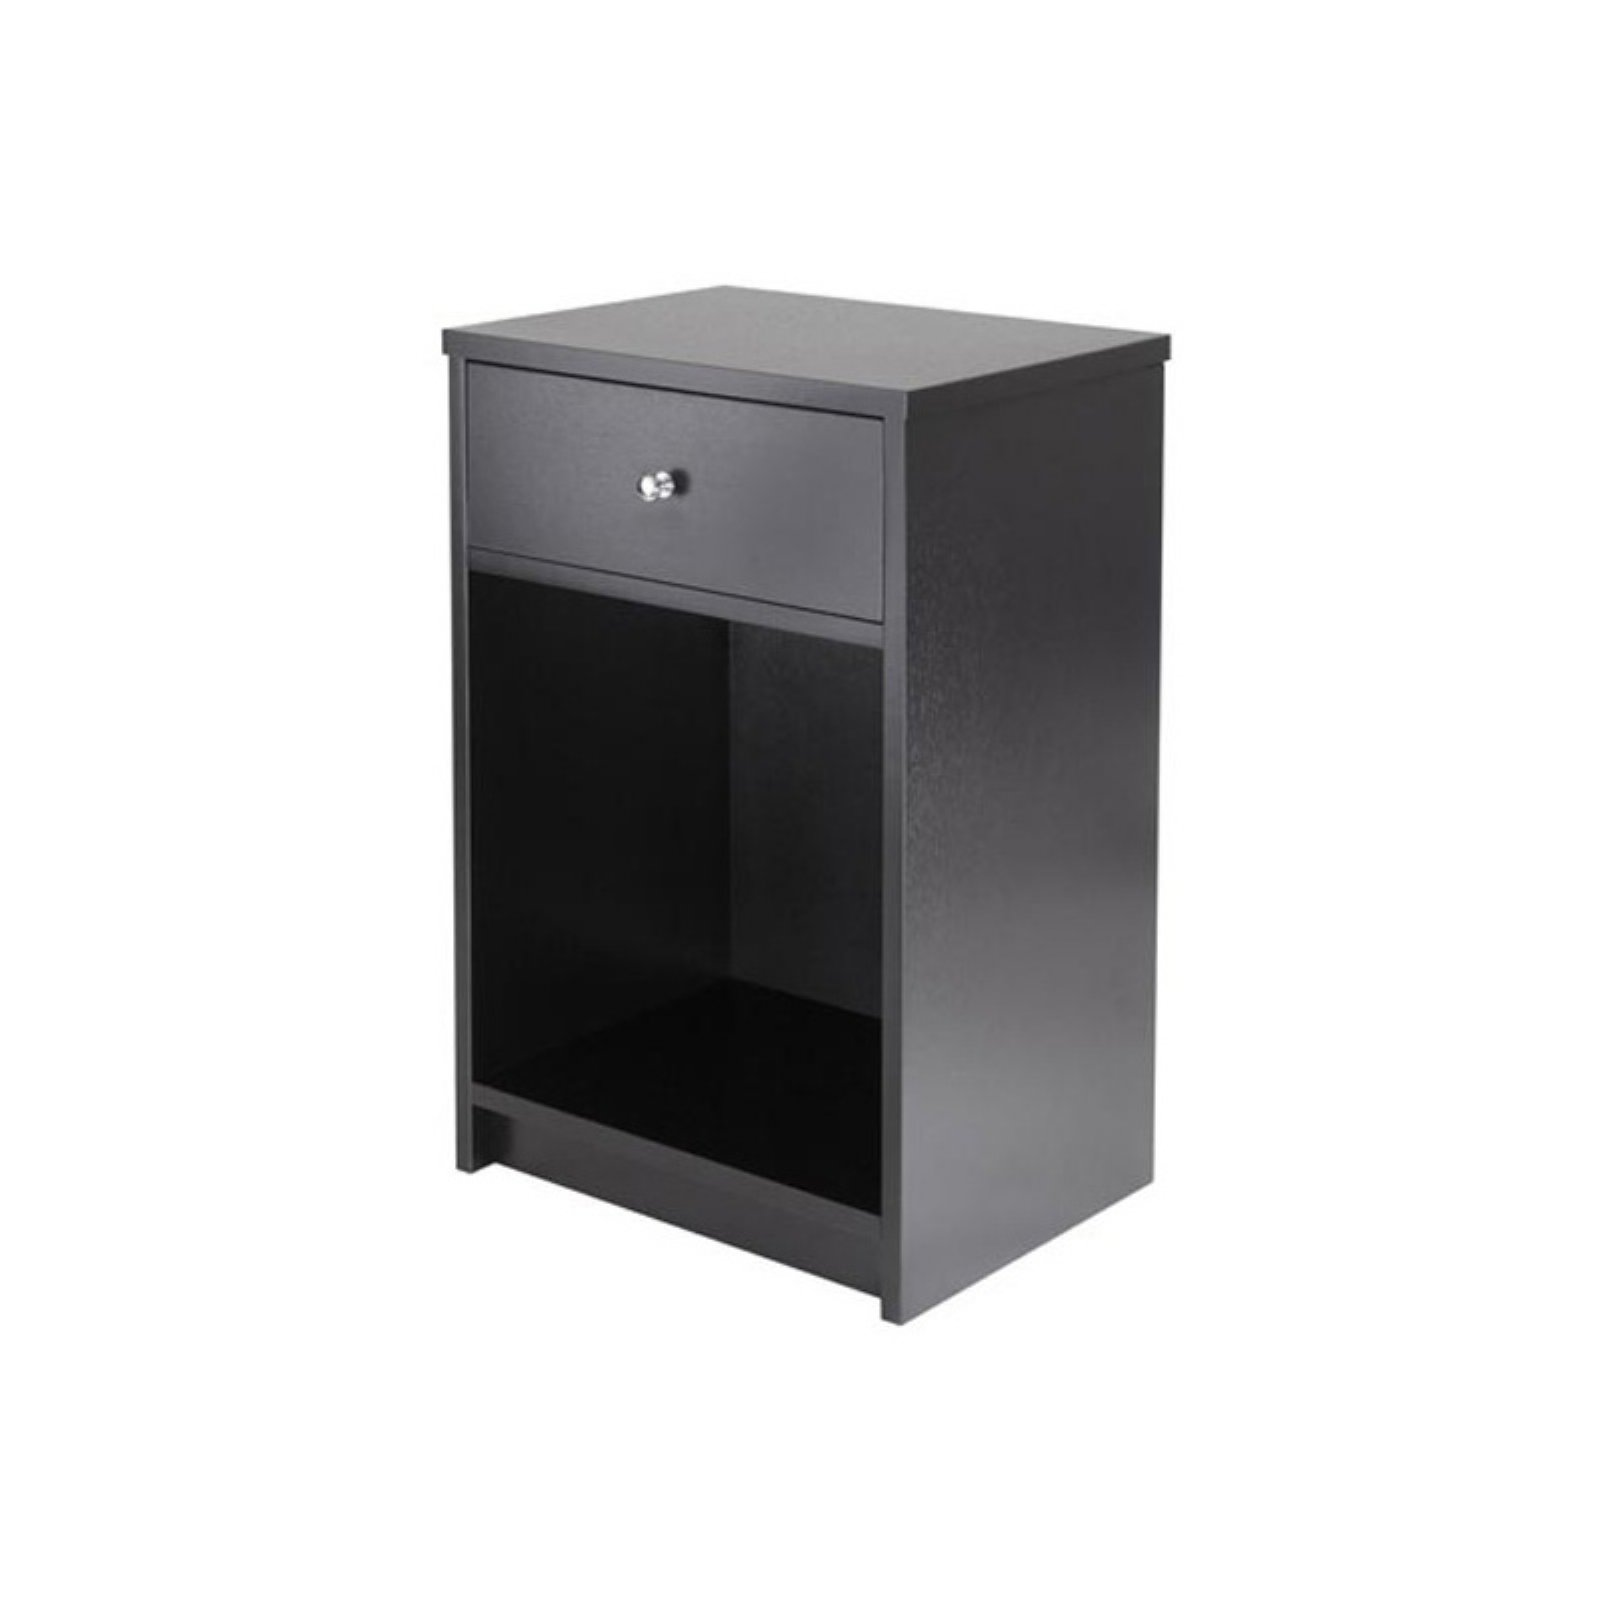 Winsome Wood Squamish Nightstand Black Finish Walmart Com Walmart Com